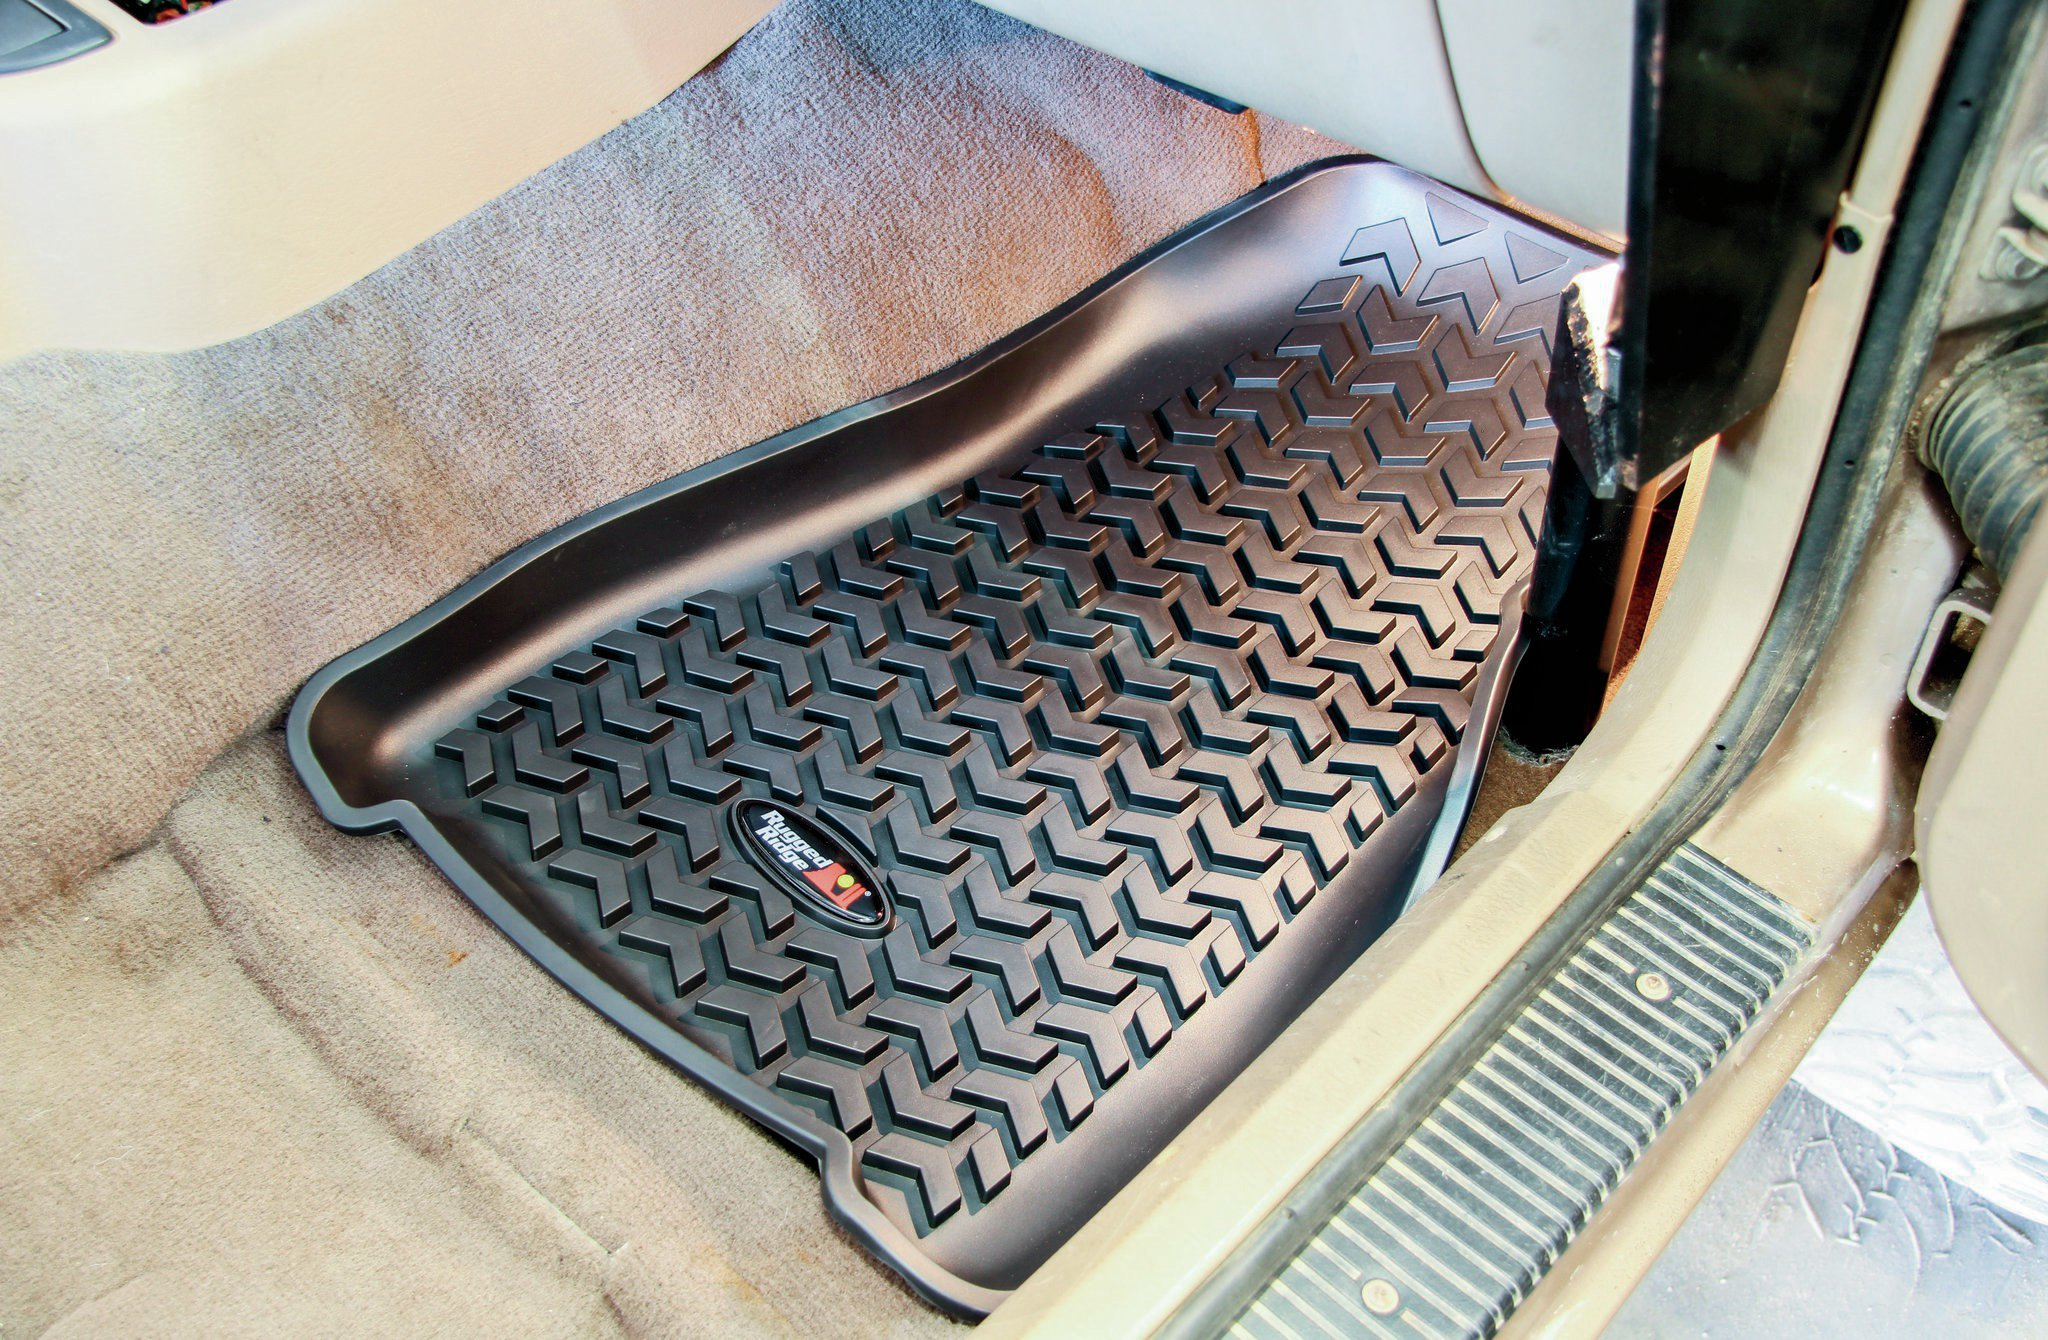 Before we could bolt-in our seats, we needed to get the carpet put back in place. Since this Jeep is based in the Southeast where mud is part of the wheeling experience, we went ahead and dropped some floor liners in from Rugged Ridge. Having a liner that you can easily spray off is well worth the modest investment.